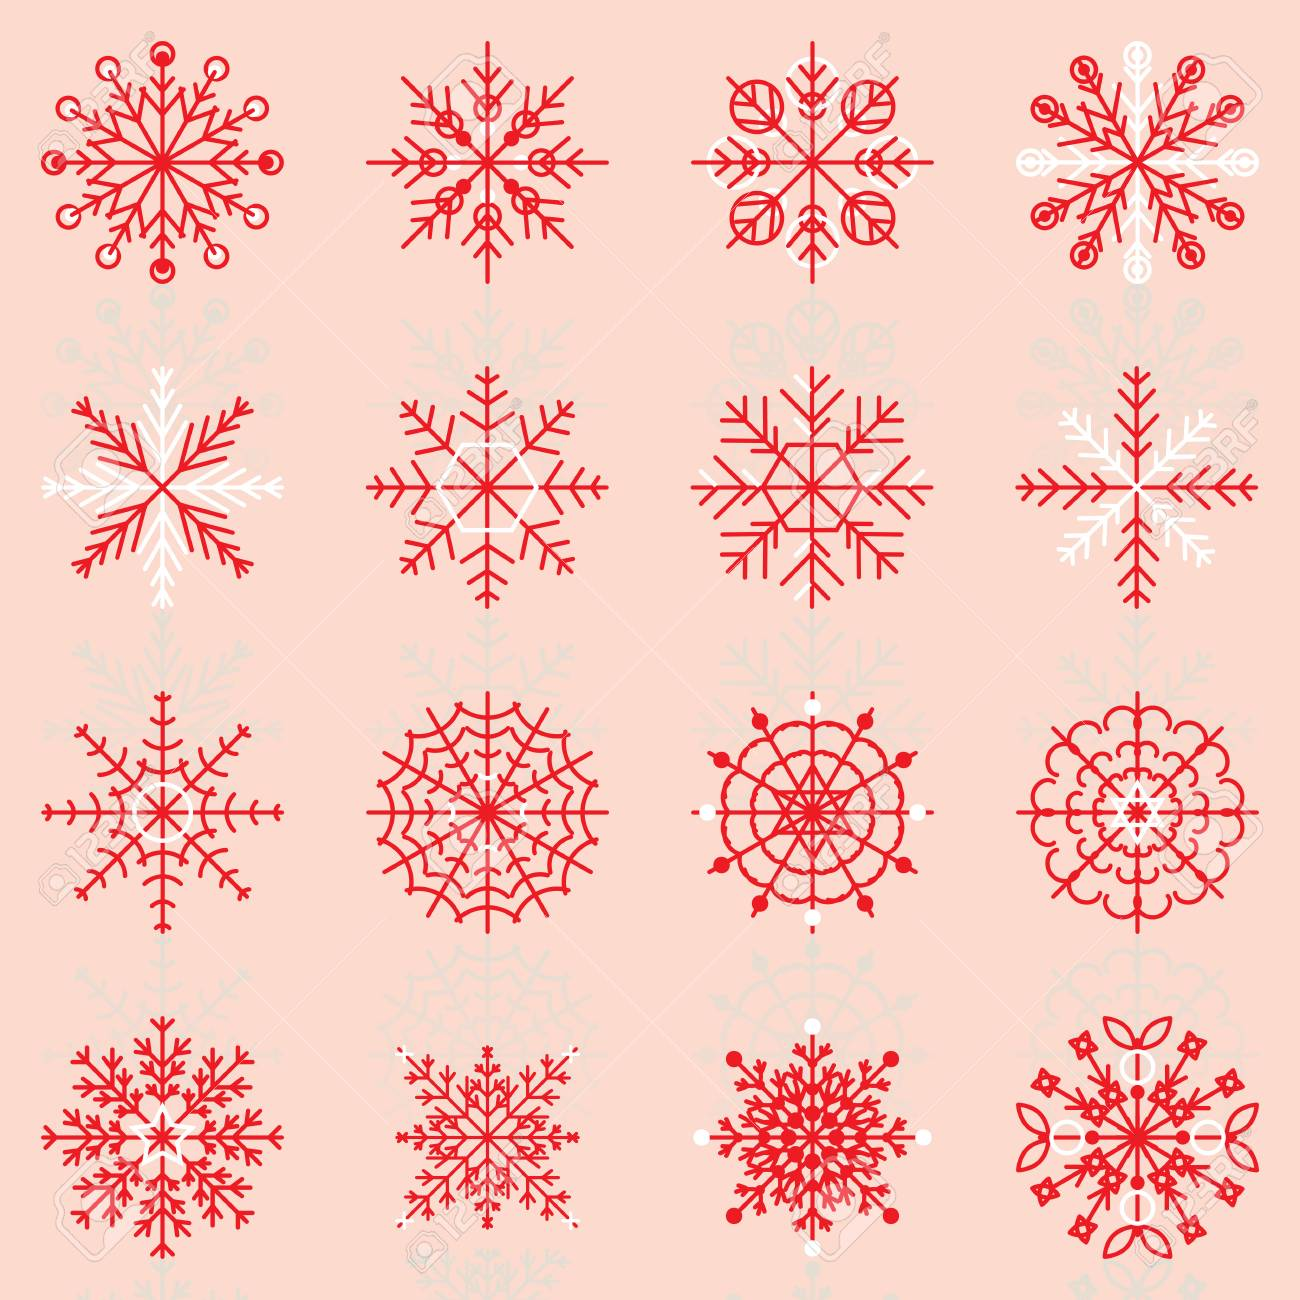 Create snowflake icons with reflect, stock vector Standard-Bild - 24026764